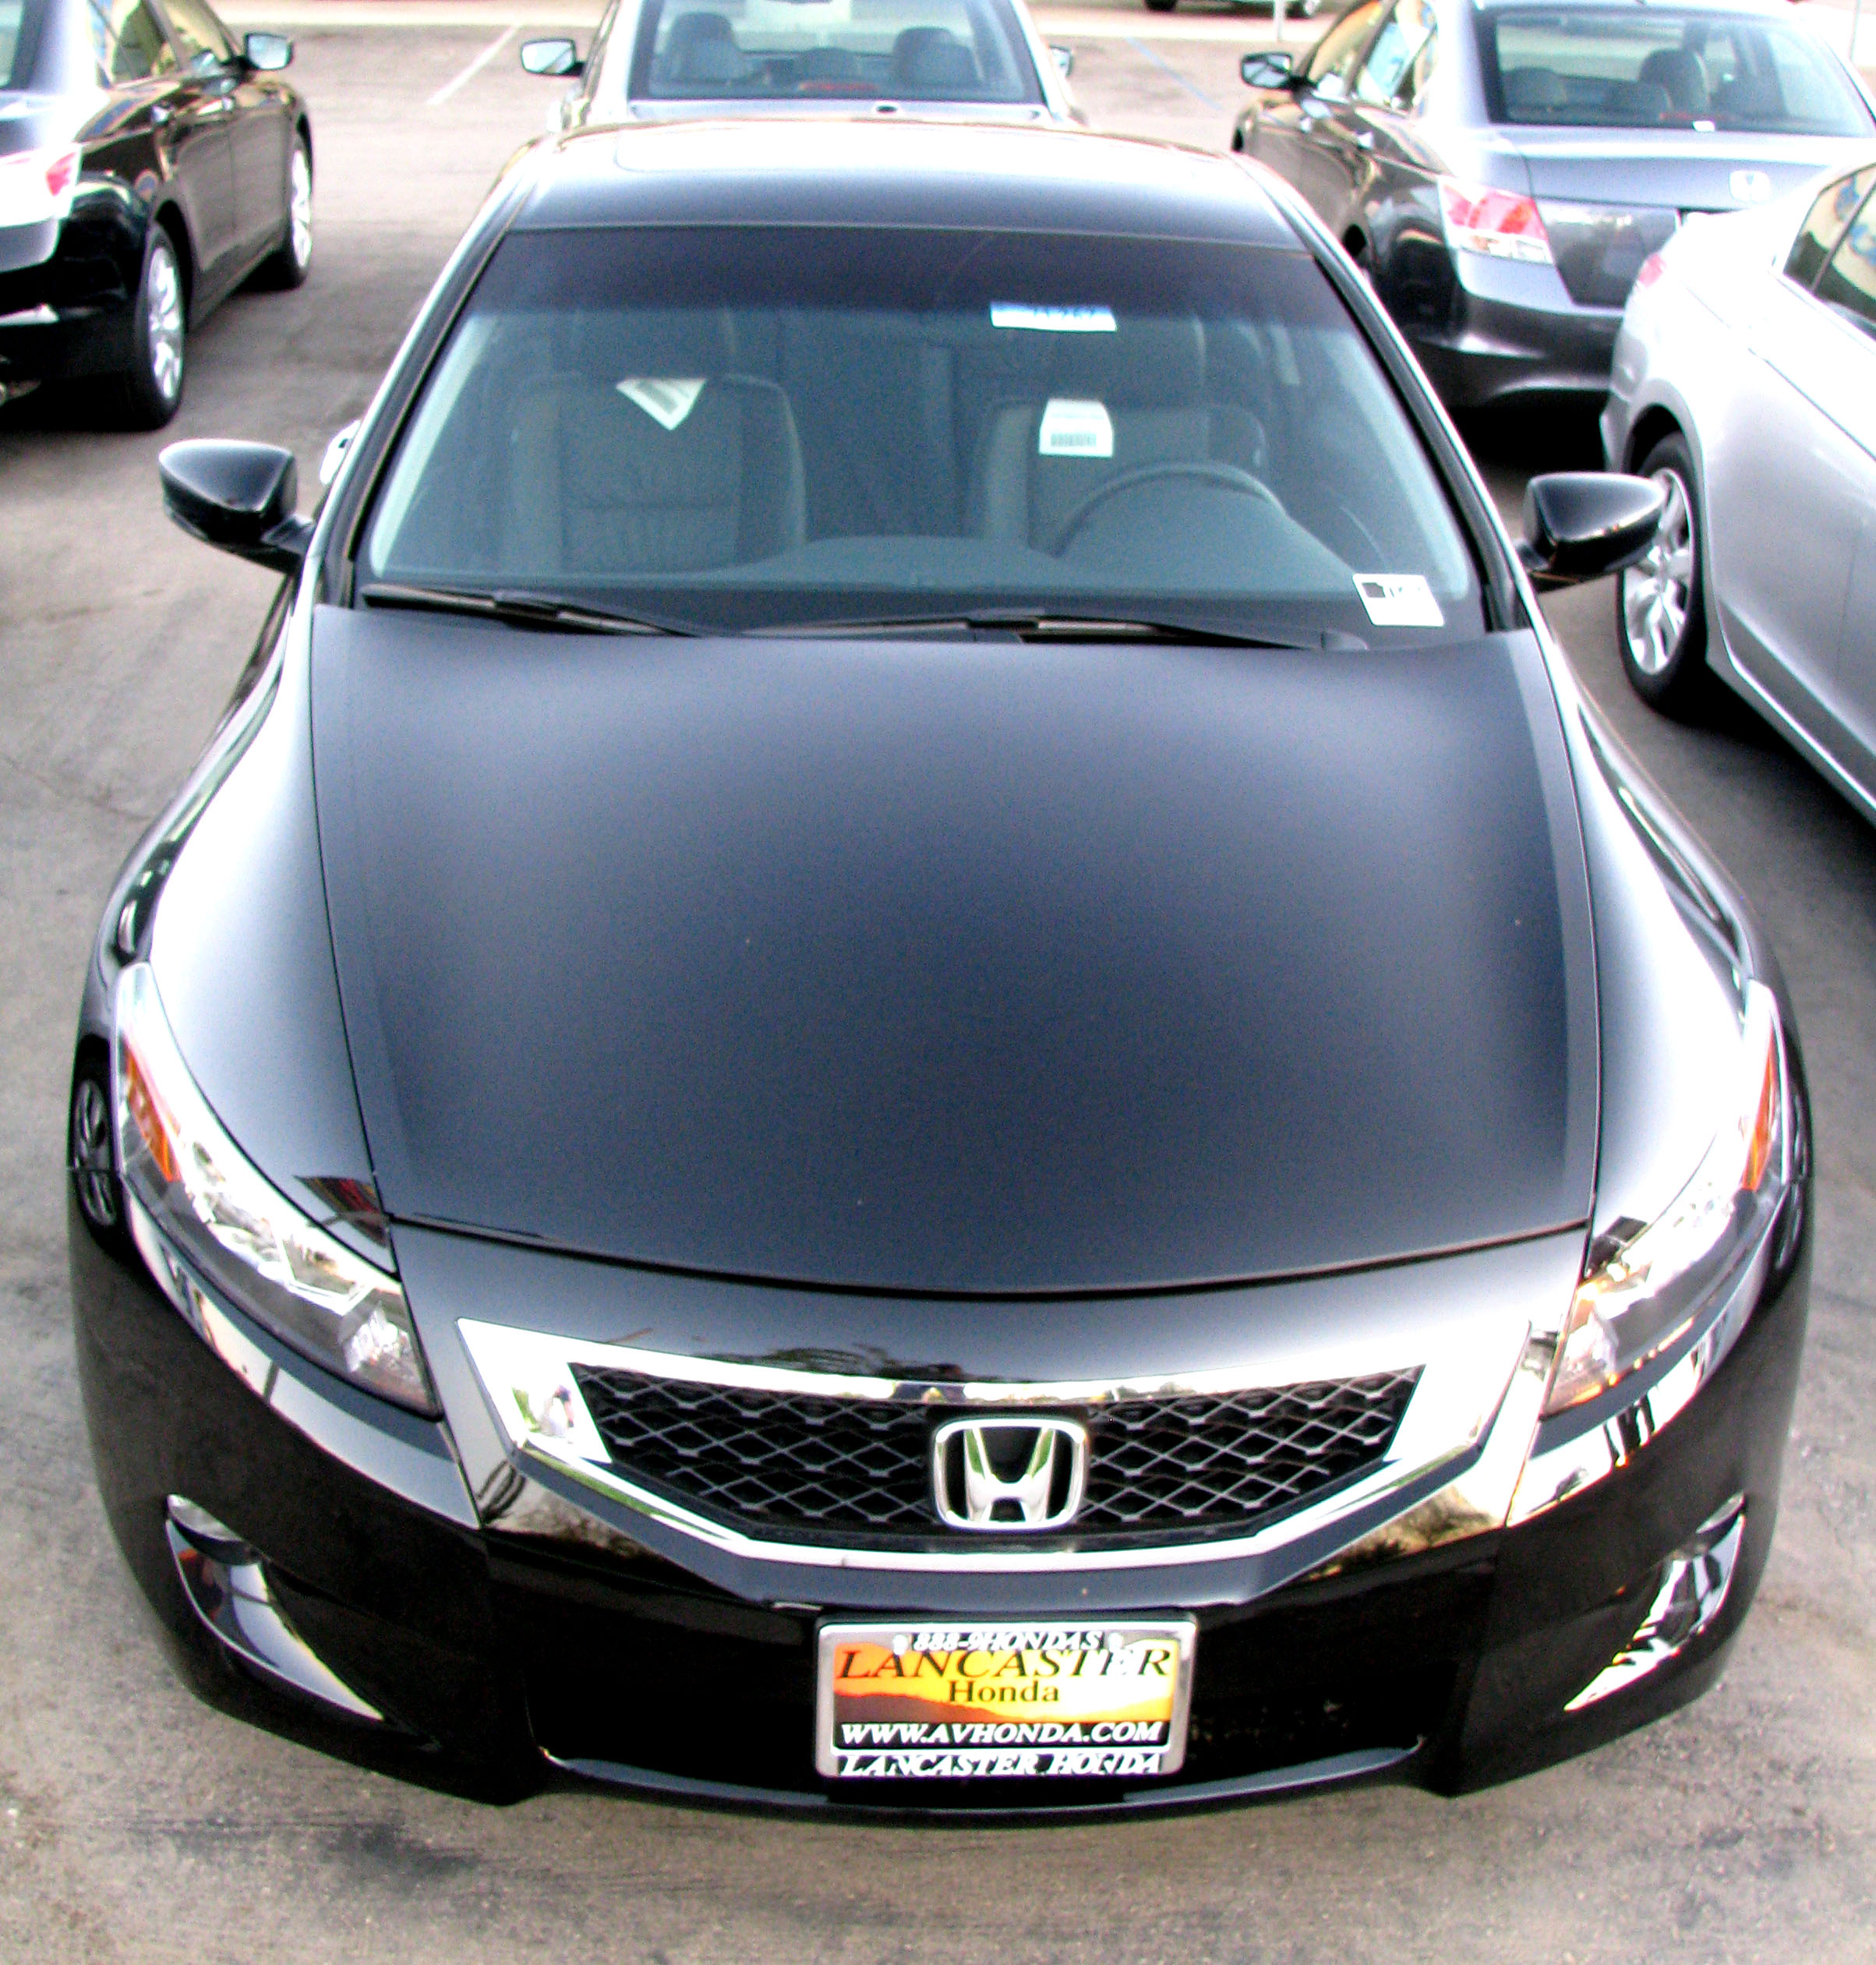 File:2009 Honda Accord Coupe (2954541131).jpg - Wikimedia ...